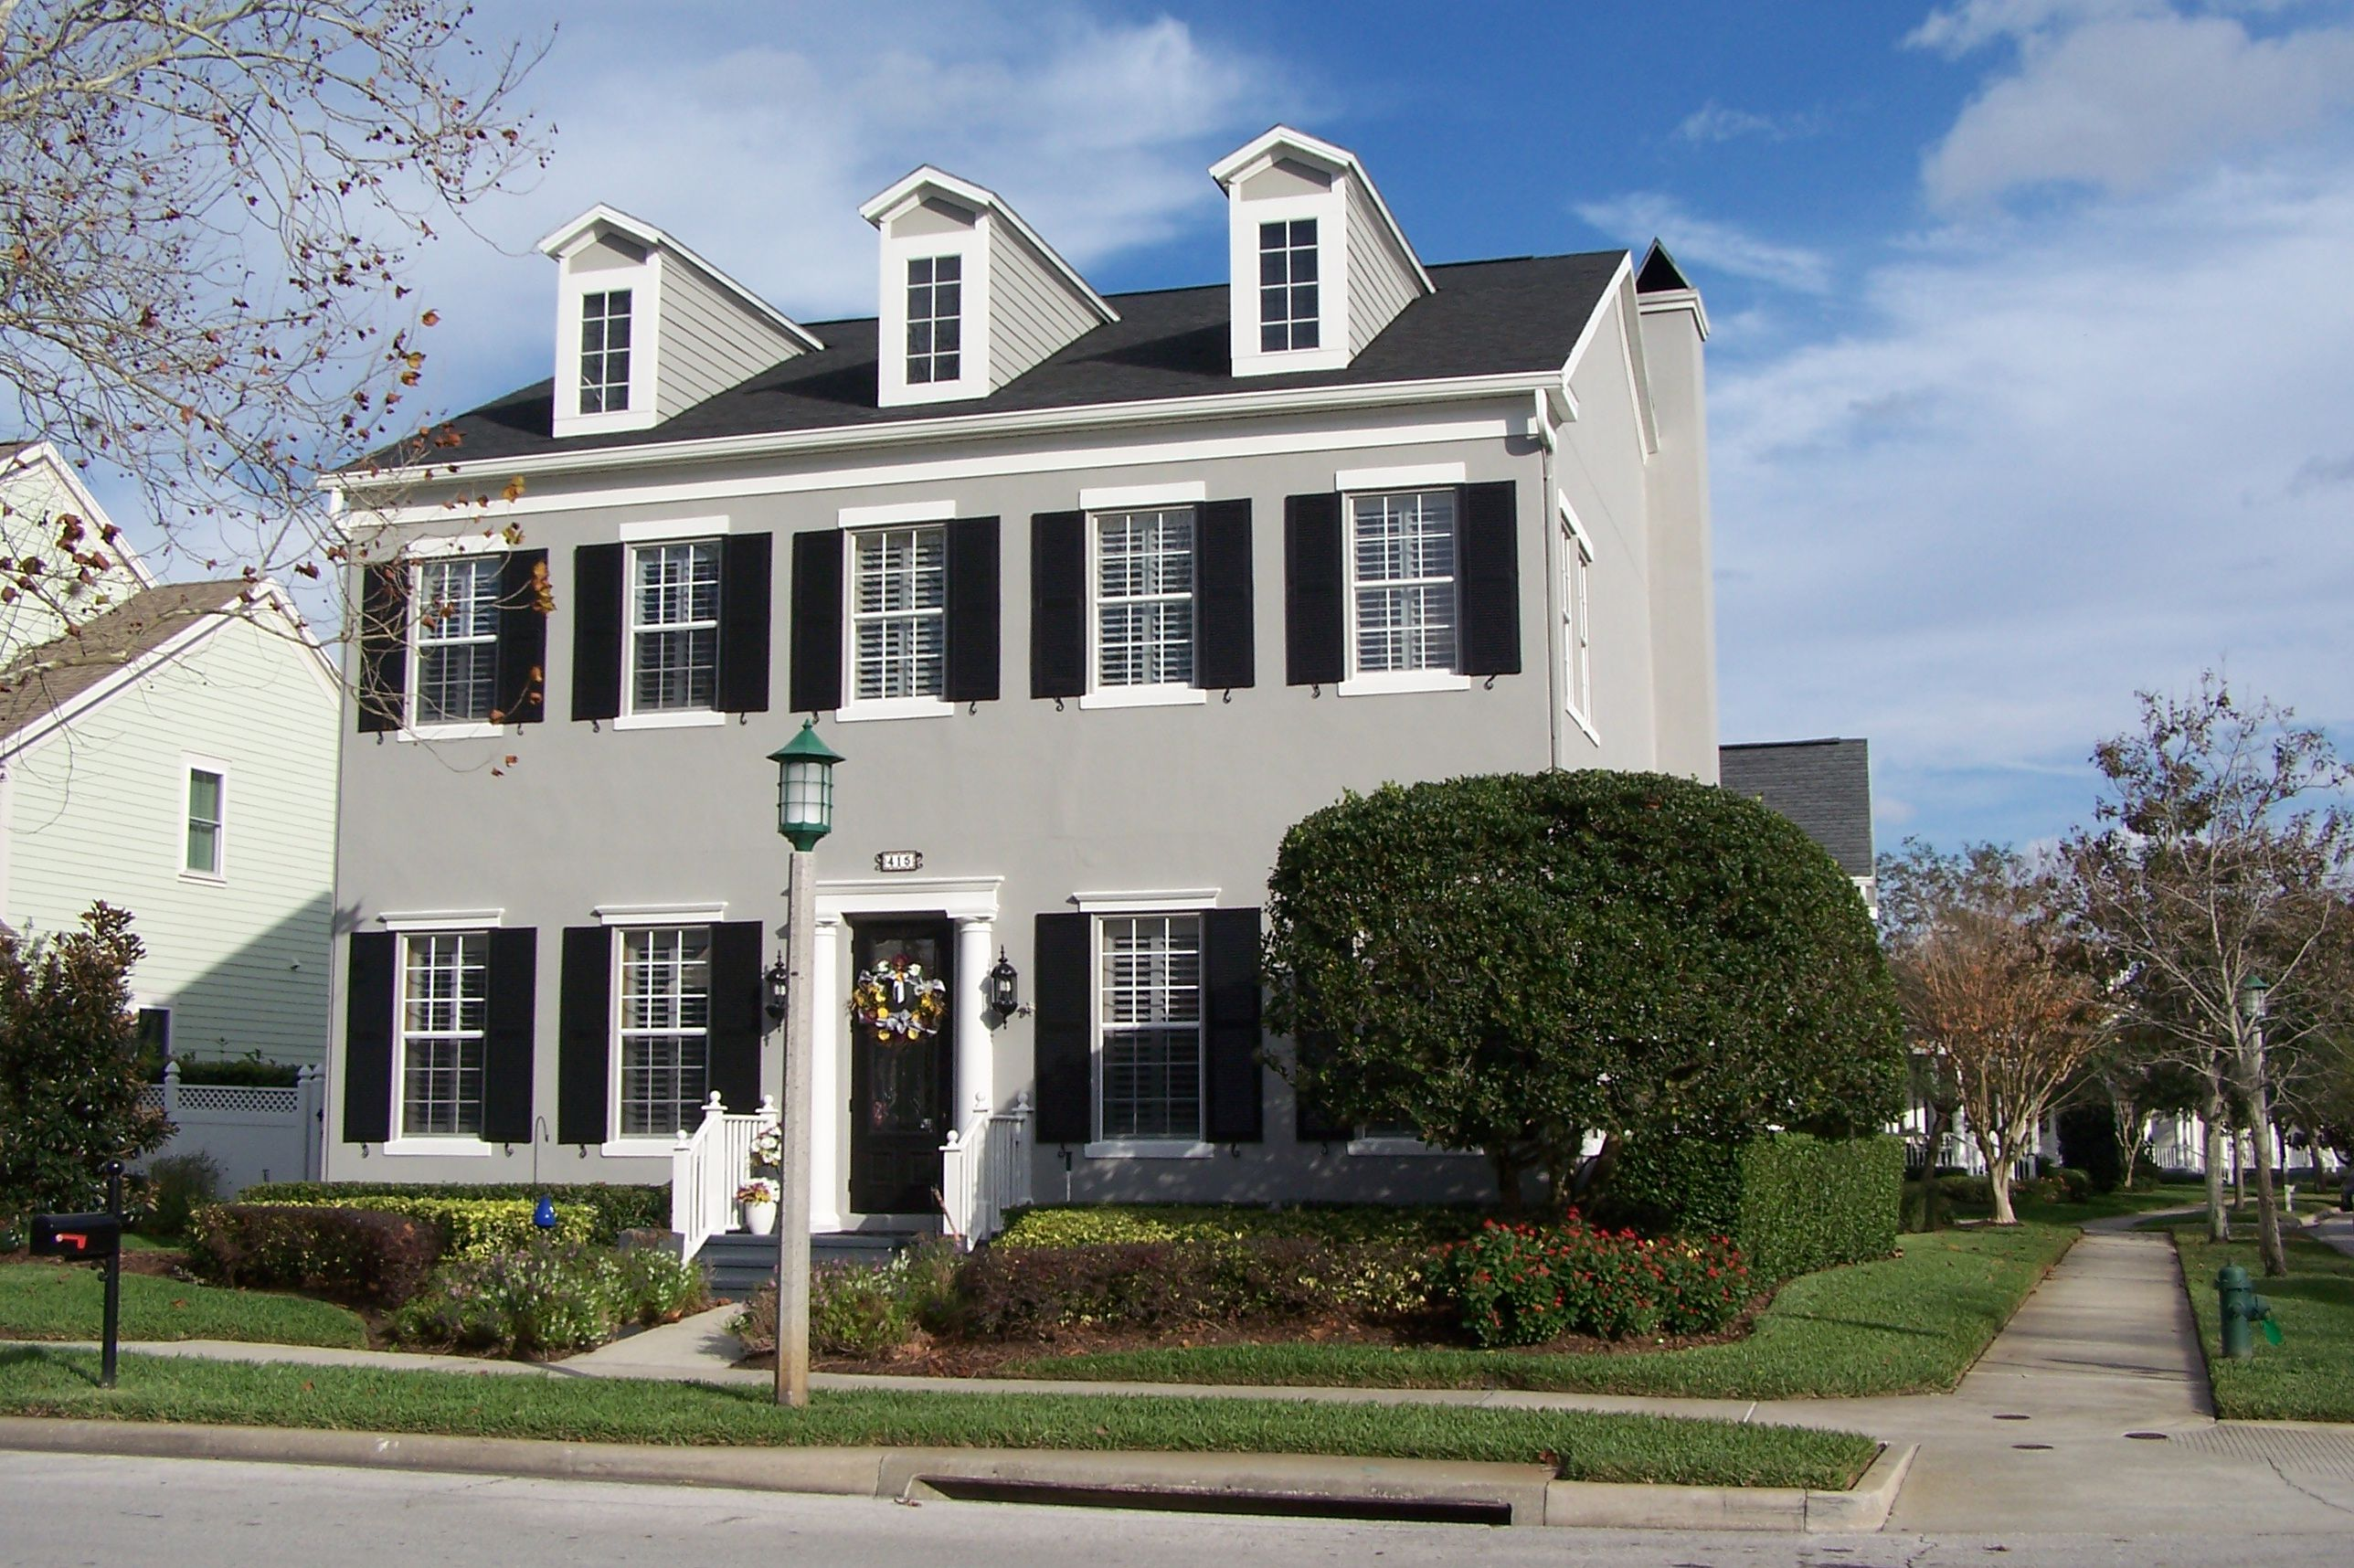 Two-story corner home with three dormers